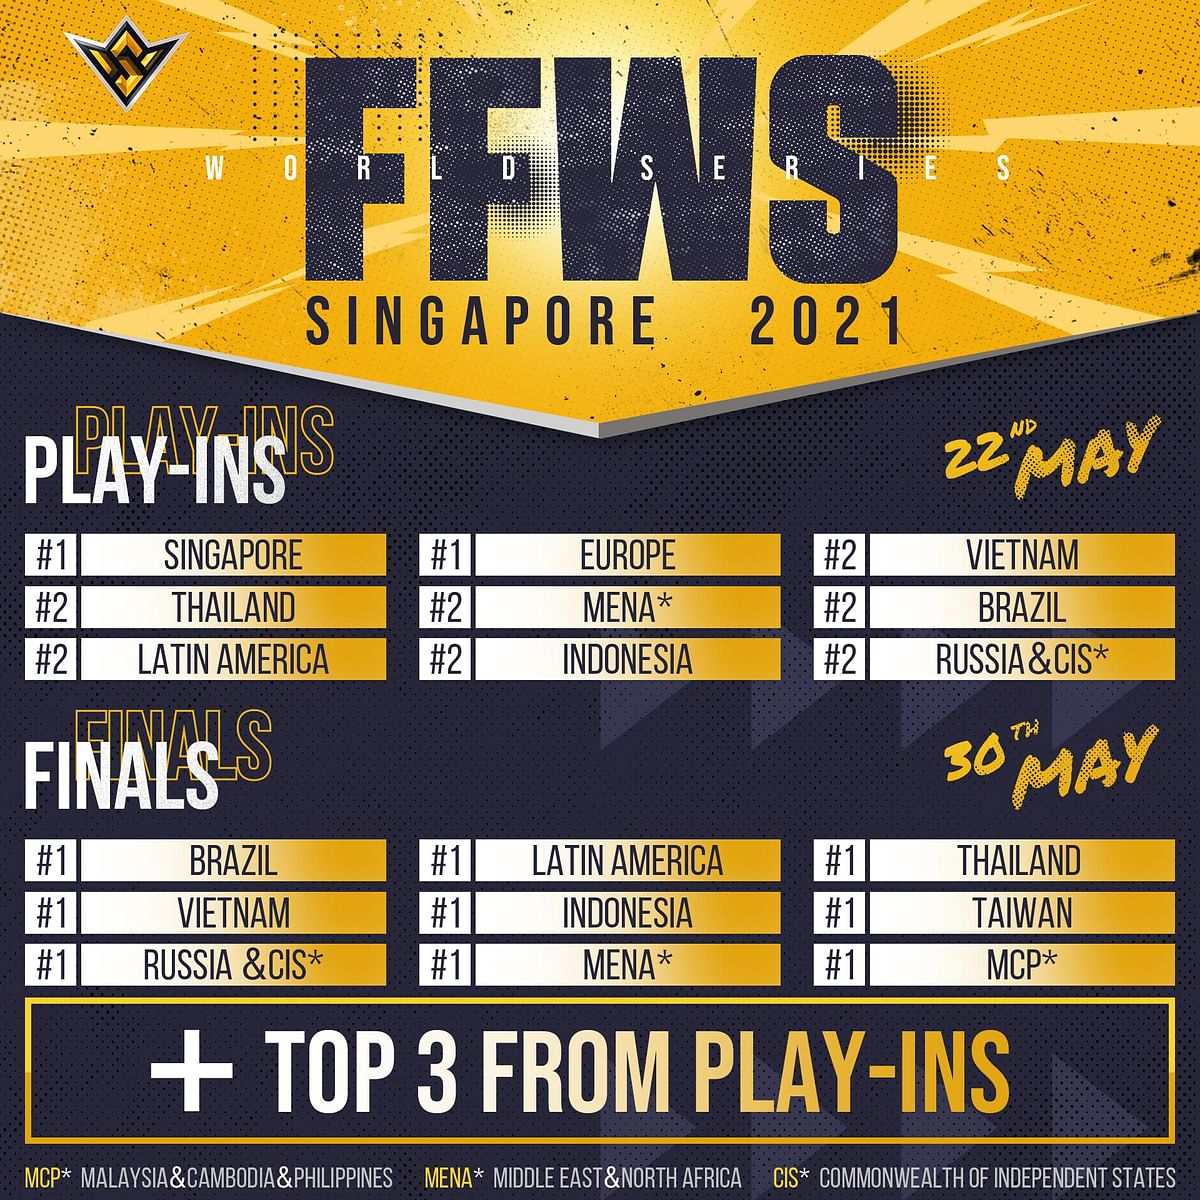 Free Fire World Series 2021 Singapore Finals to Take Place on May 30, 2021